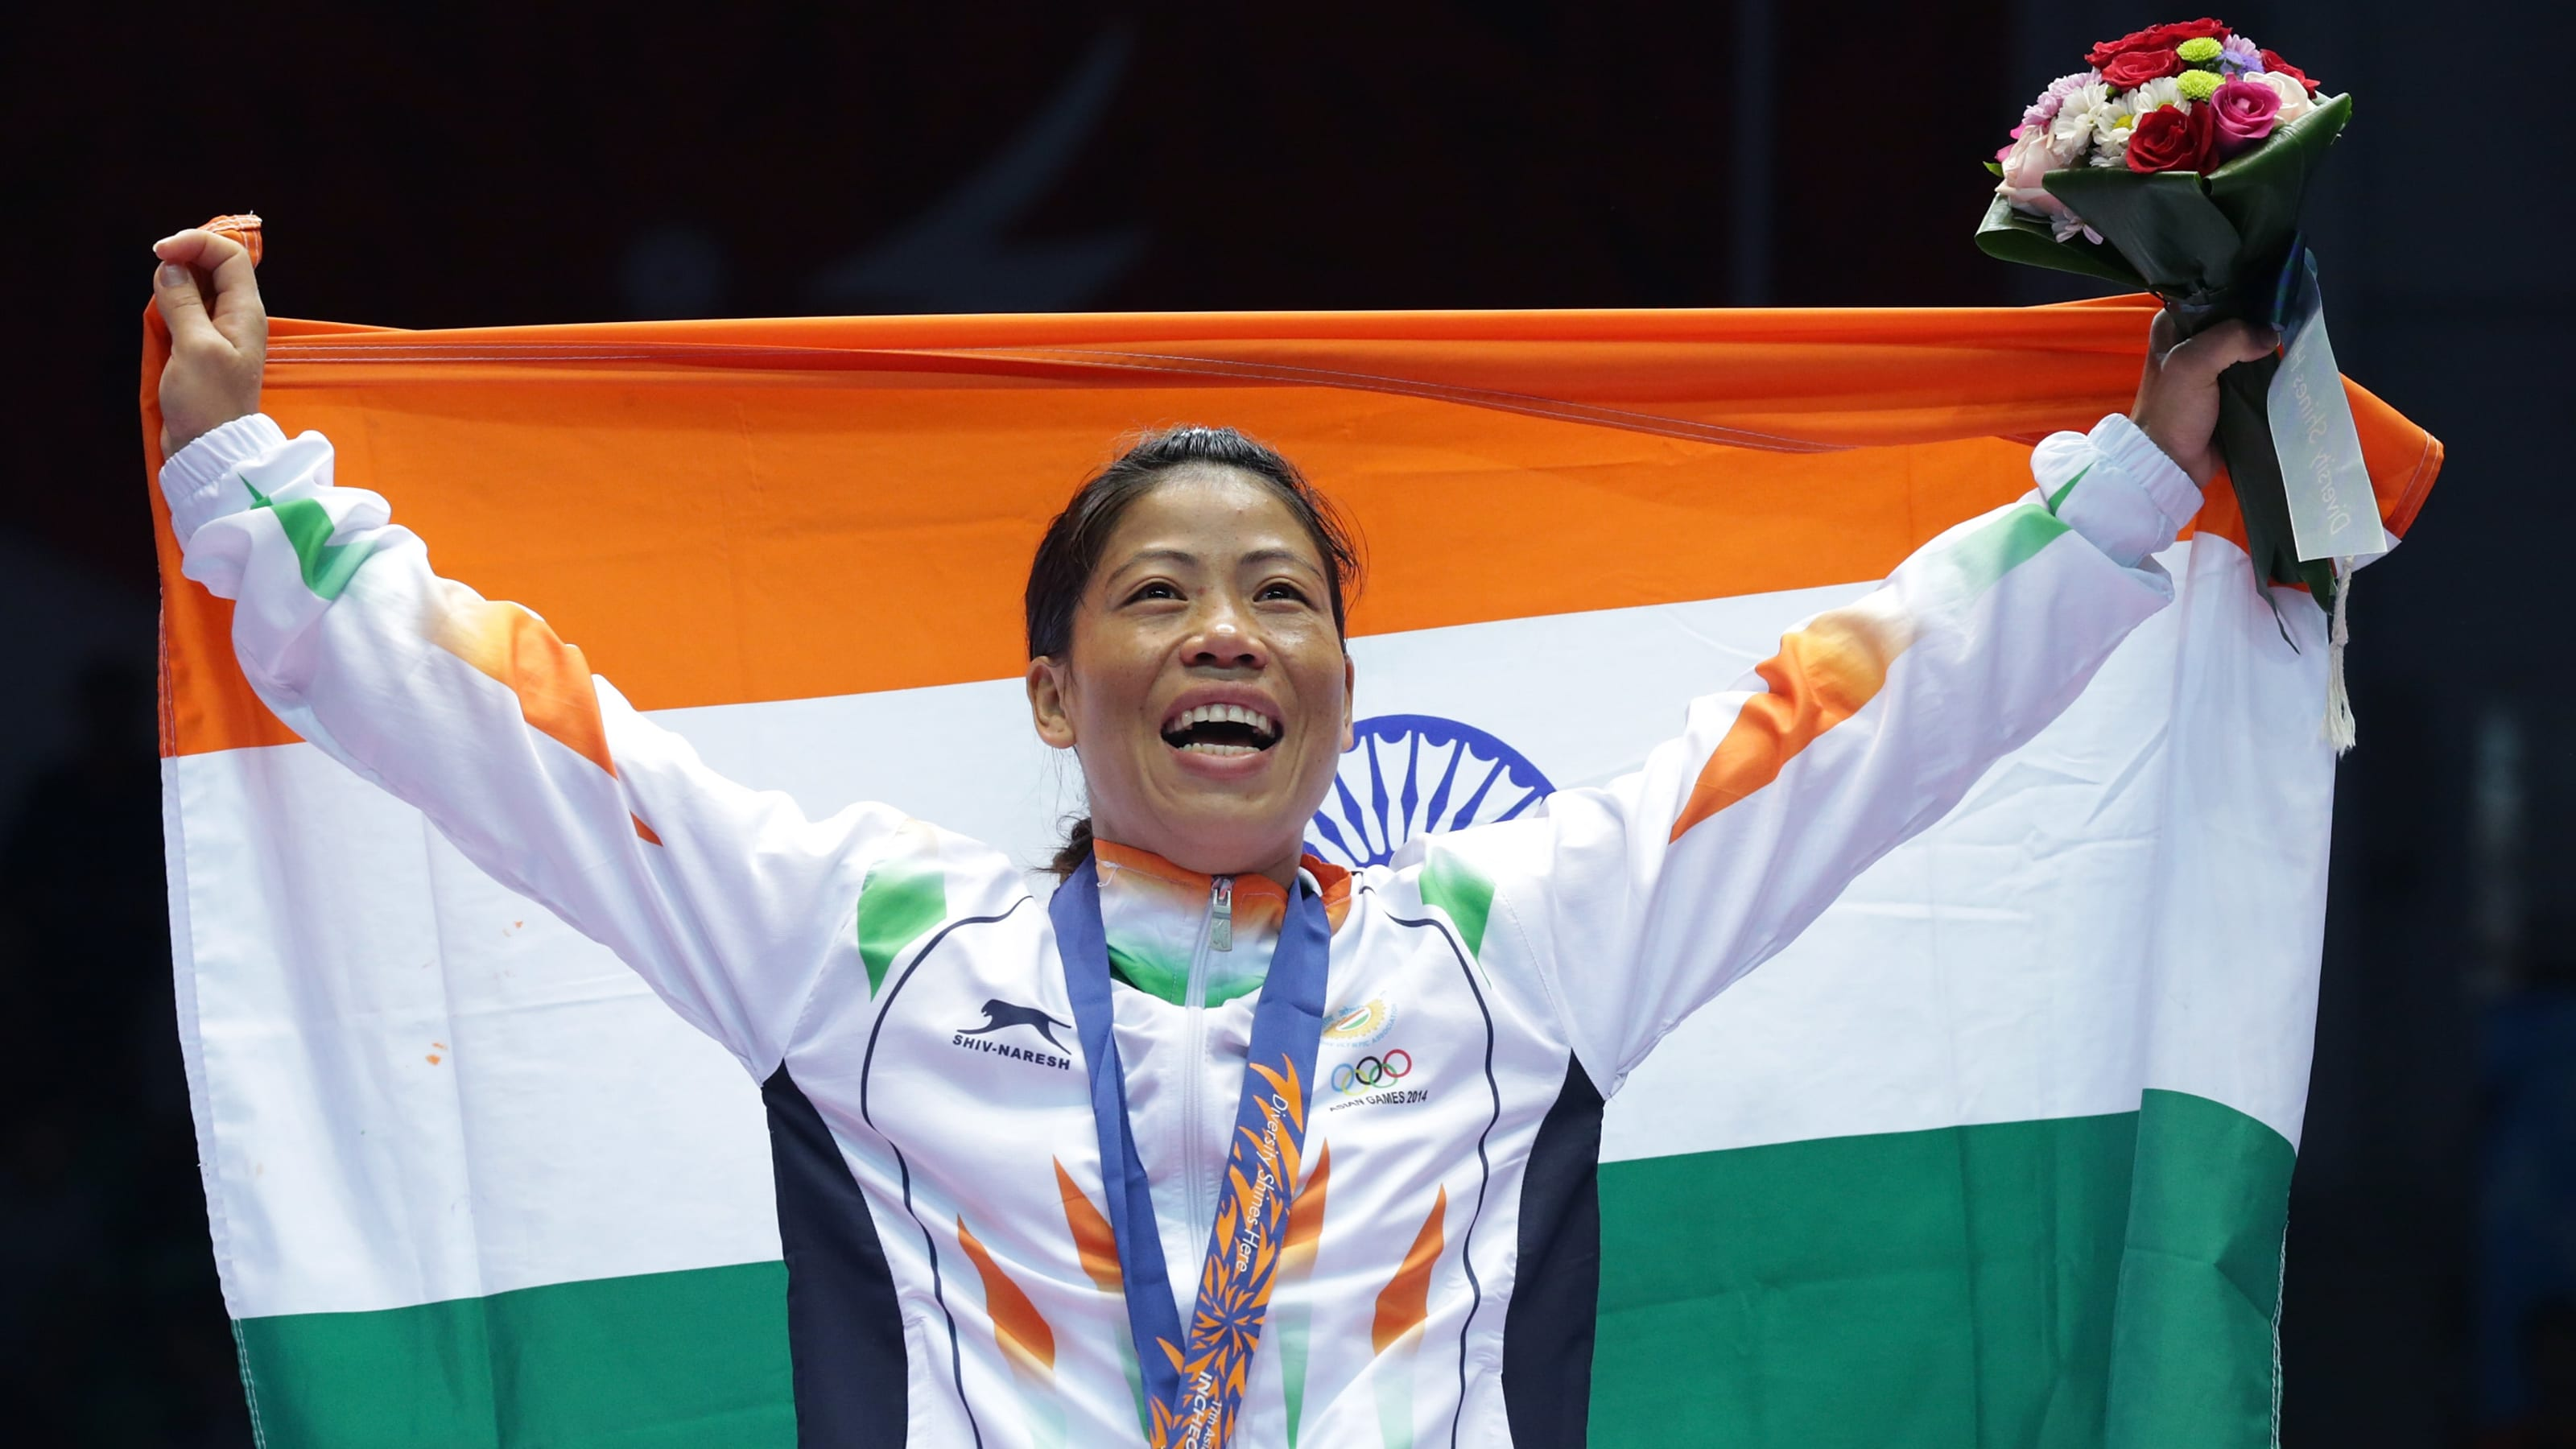 Support early in career can help athletes excel: Mary Kom